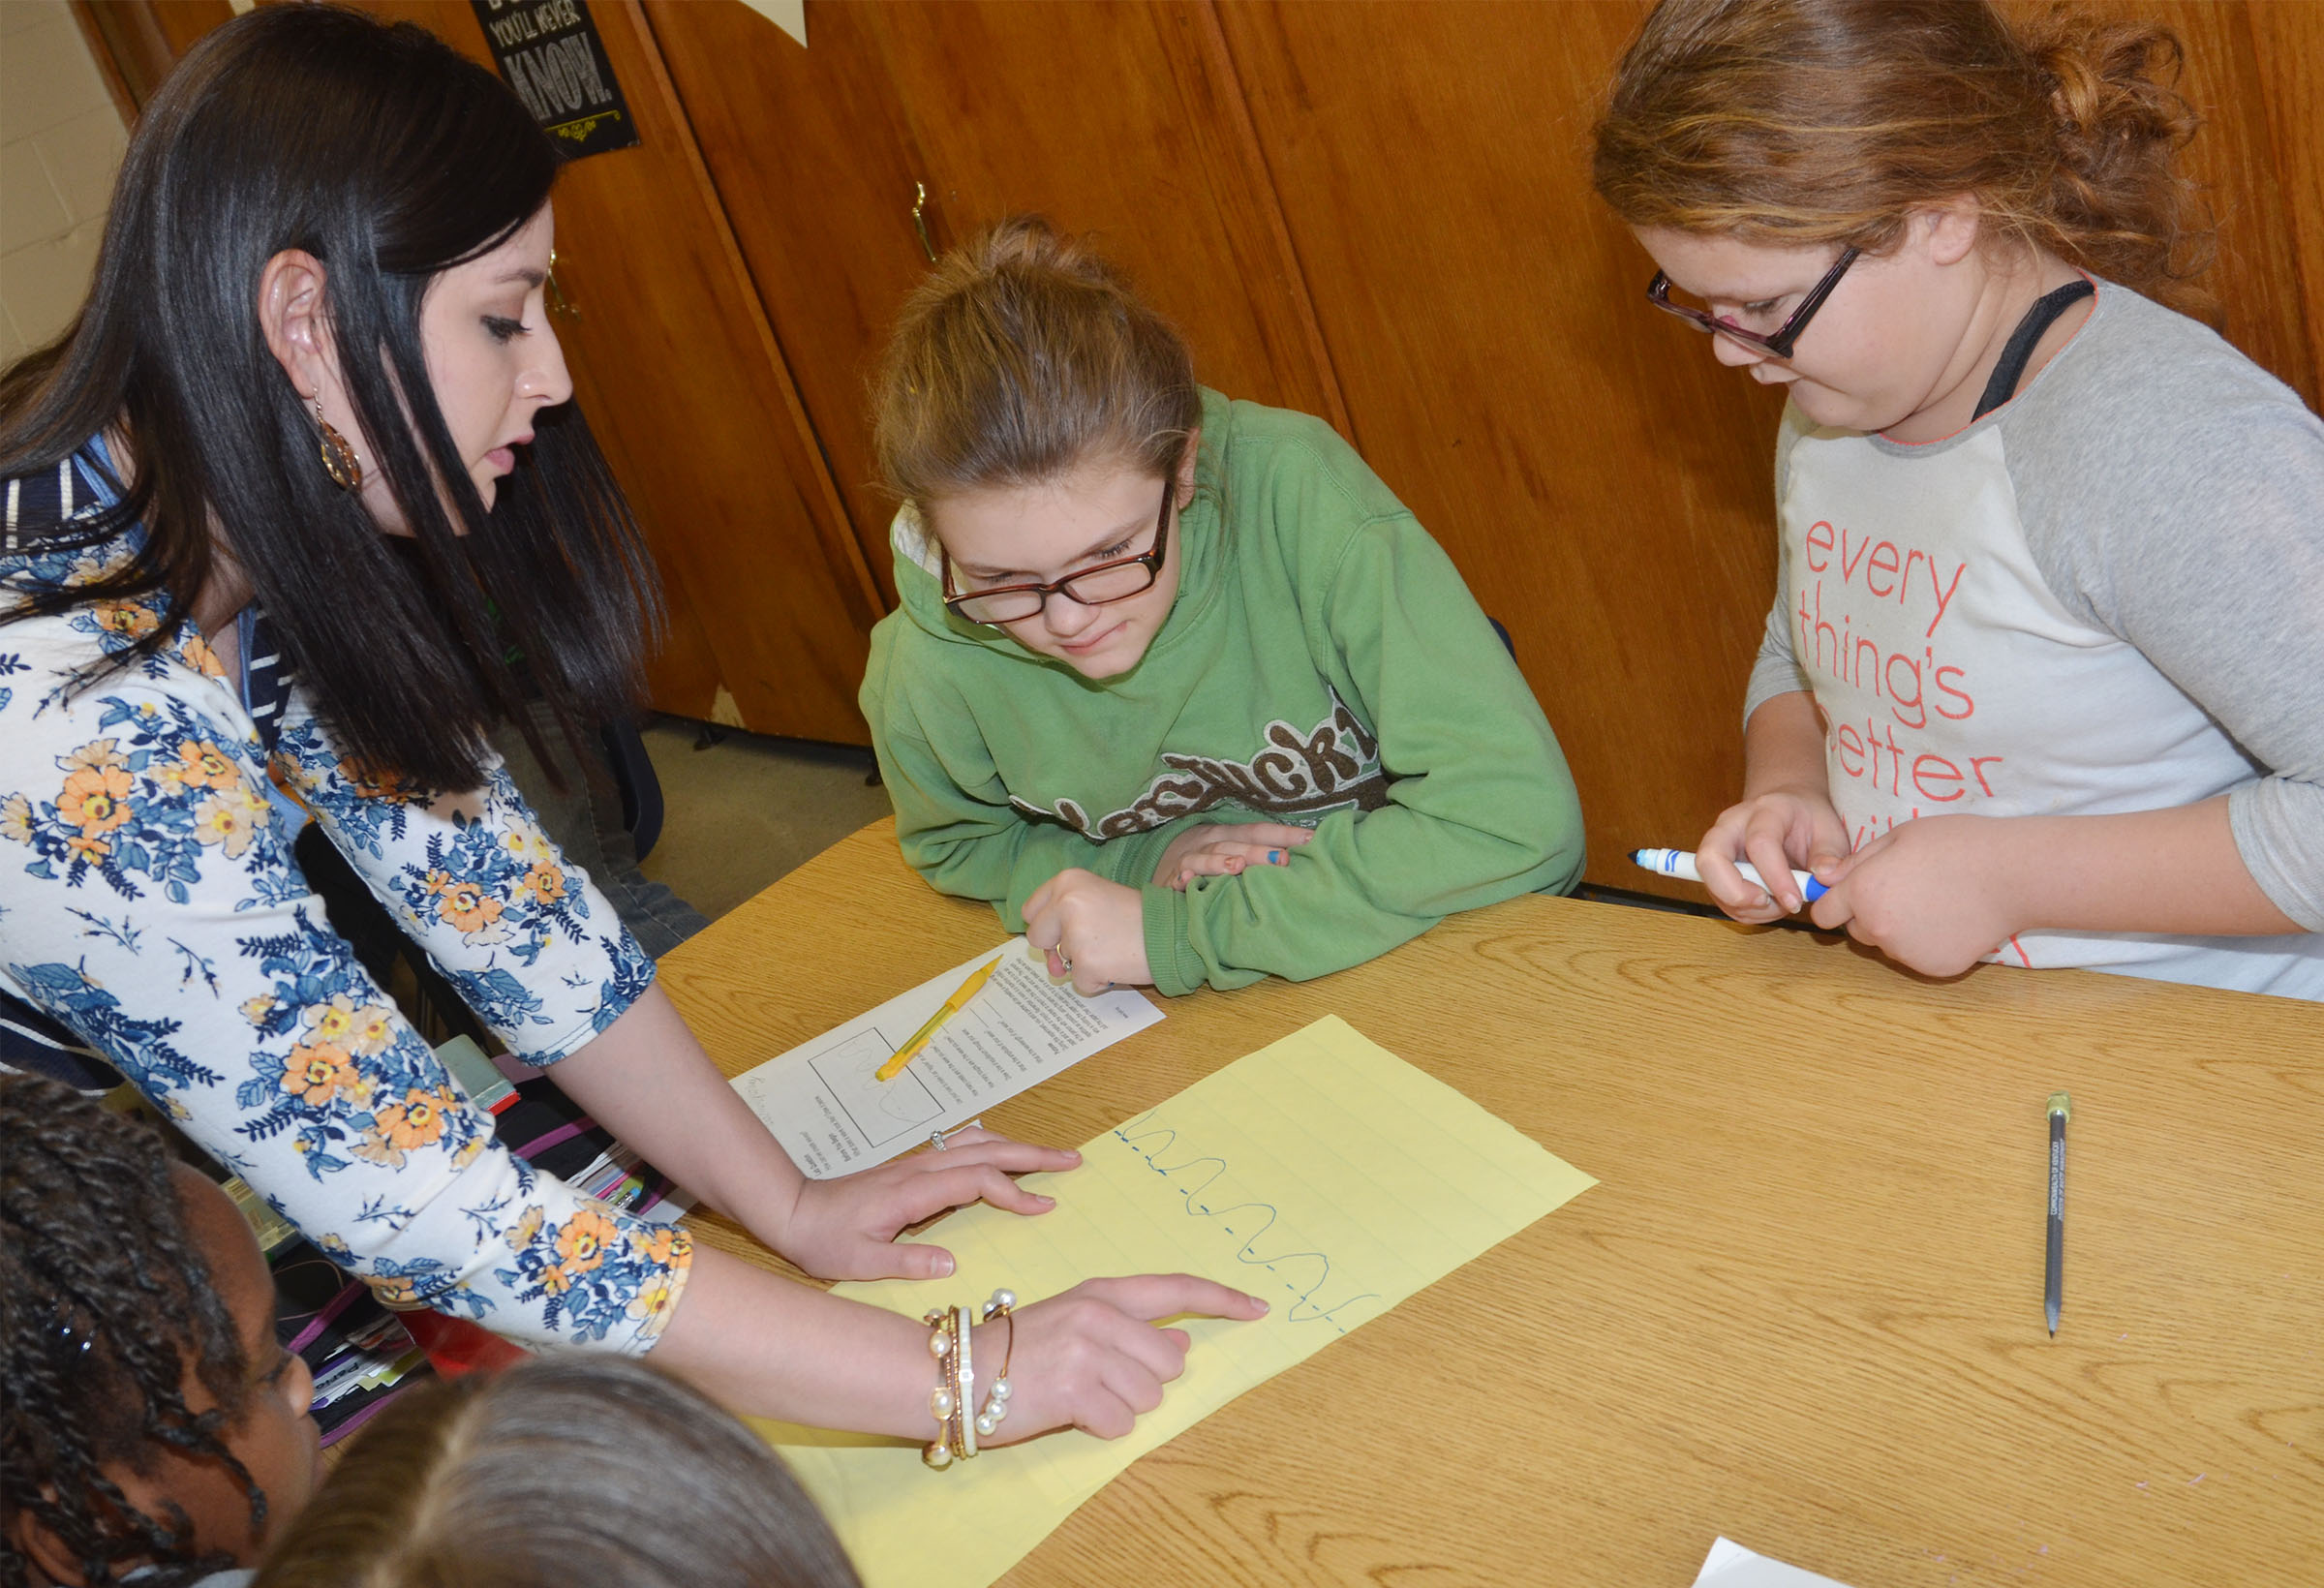 CMS fourth-grade teacher Samantha Coomer helps students Autumn Jones, at left, and Carmen Gurley calculate the amplitude of the wave they drew.